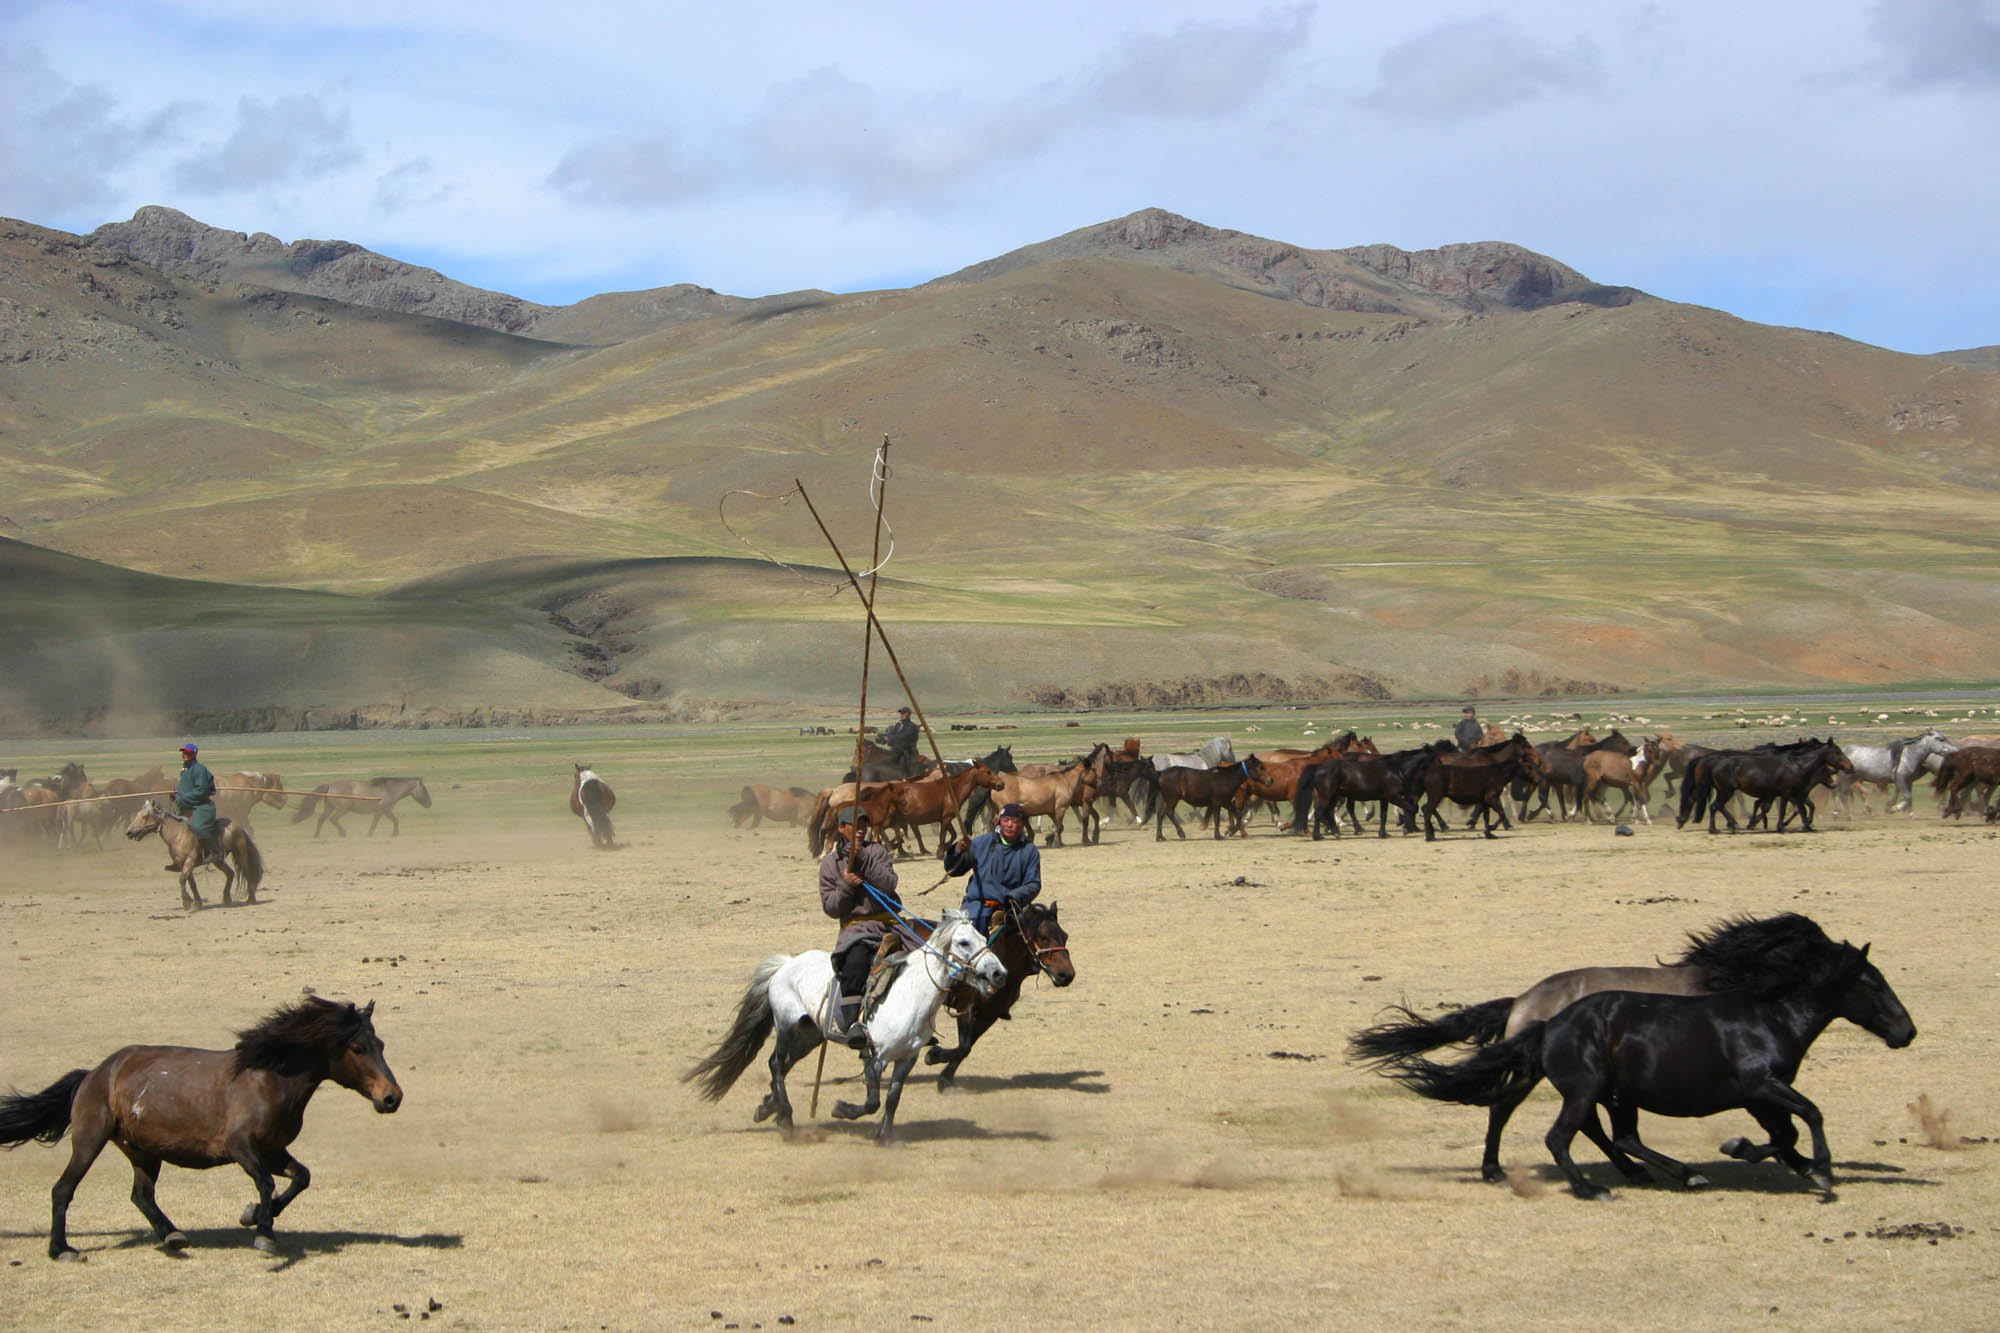 ©Randocheval - Mongolie